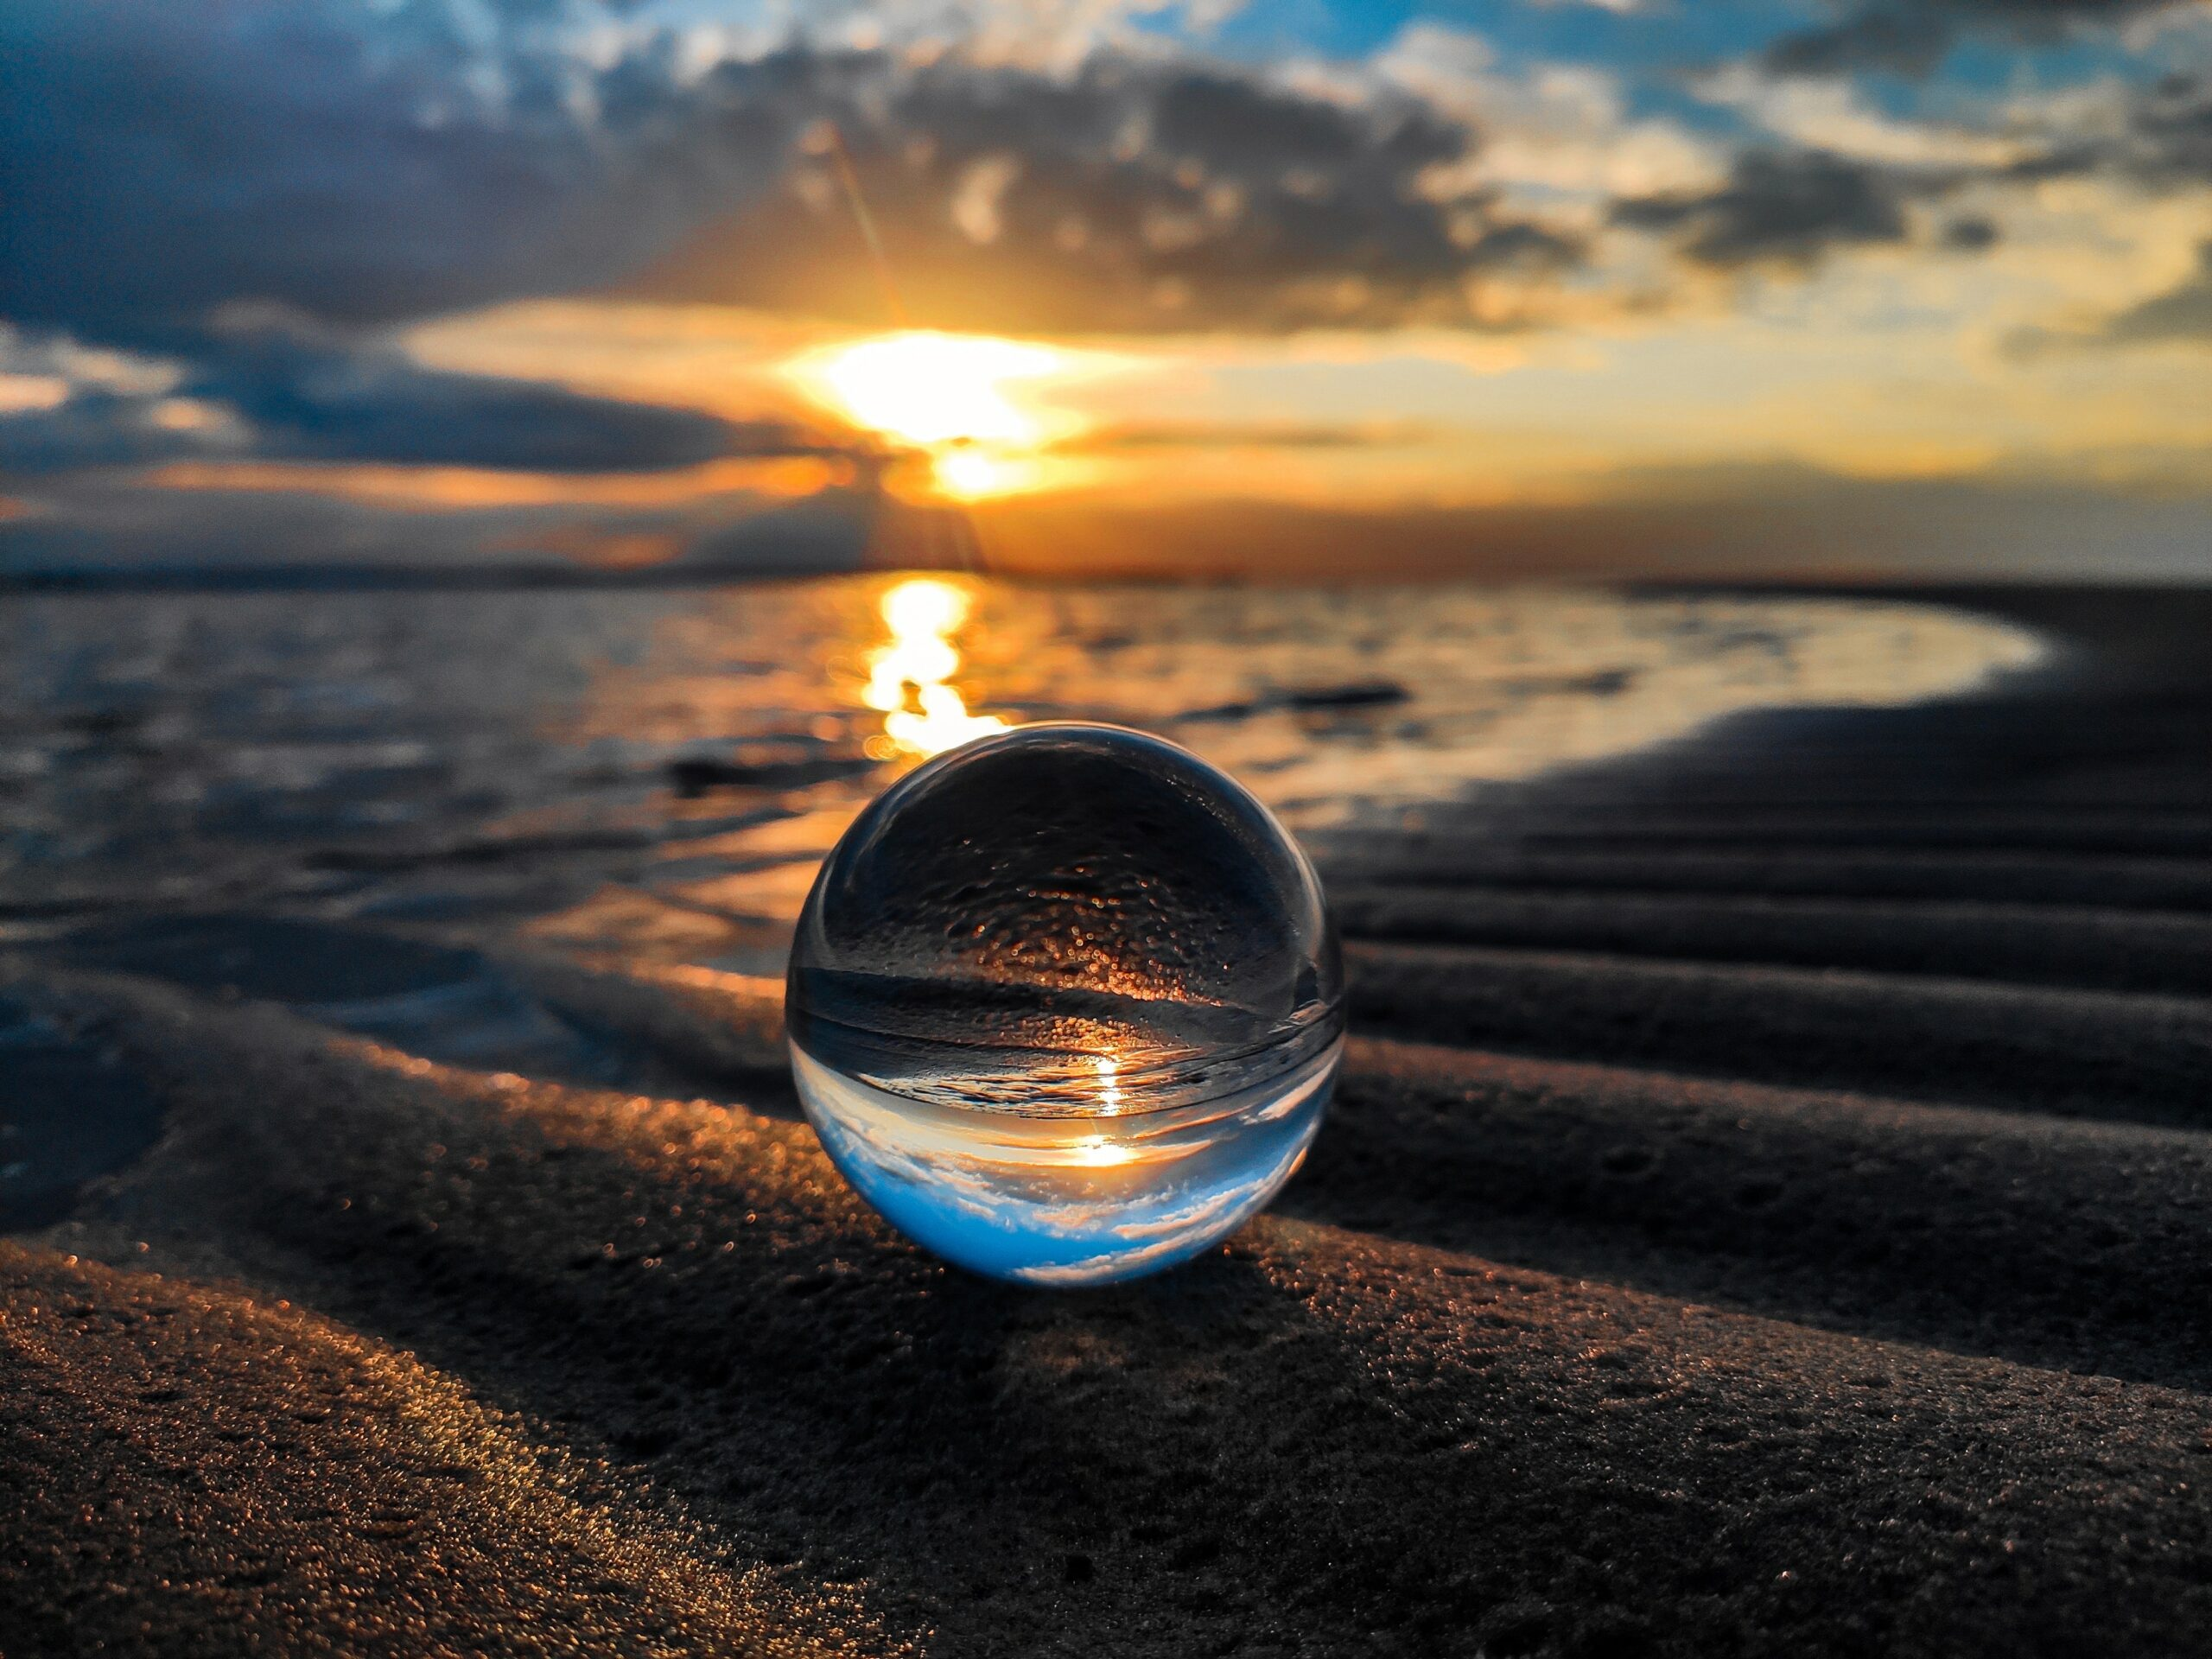 Sphere reflects sun image